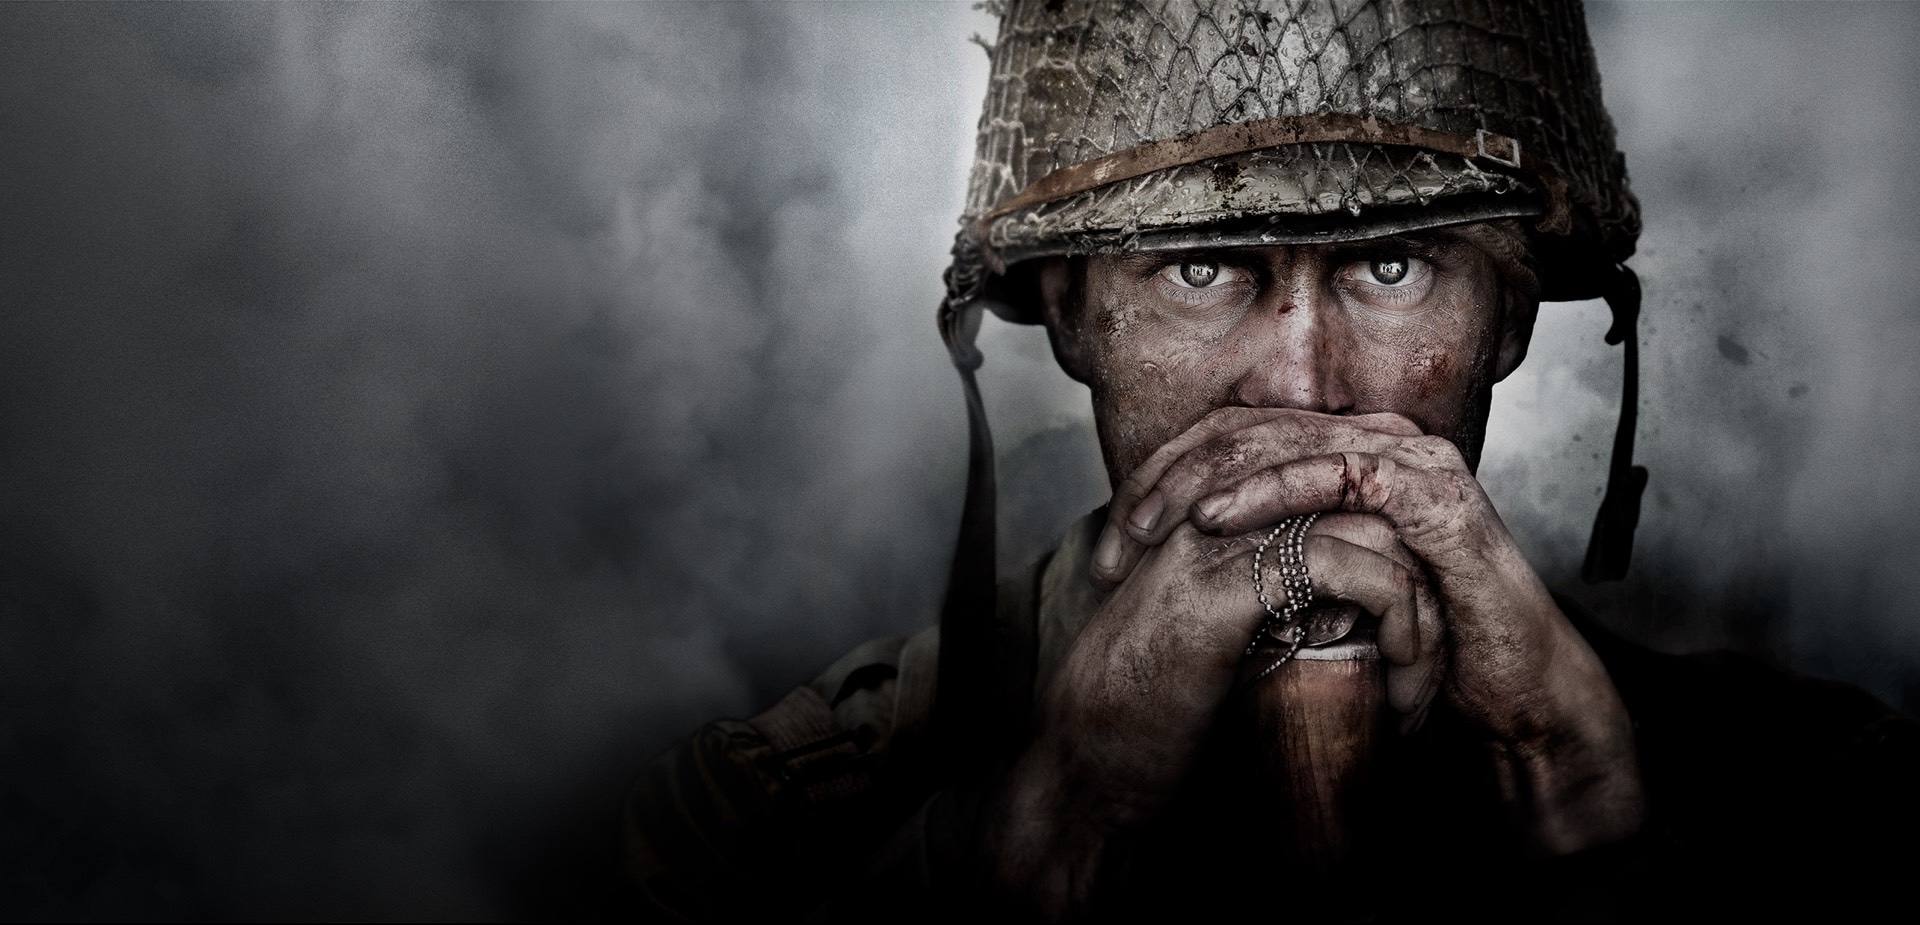 Call of Duty: WWII Was the Best-Selling Game of 2017